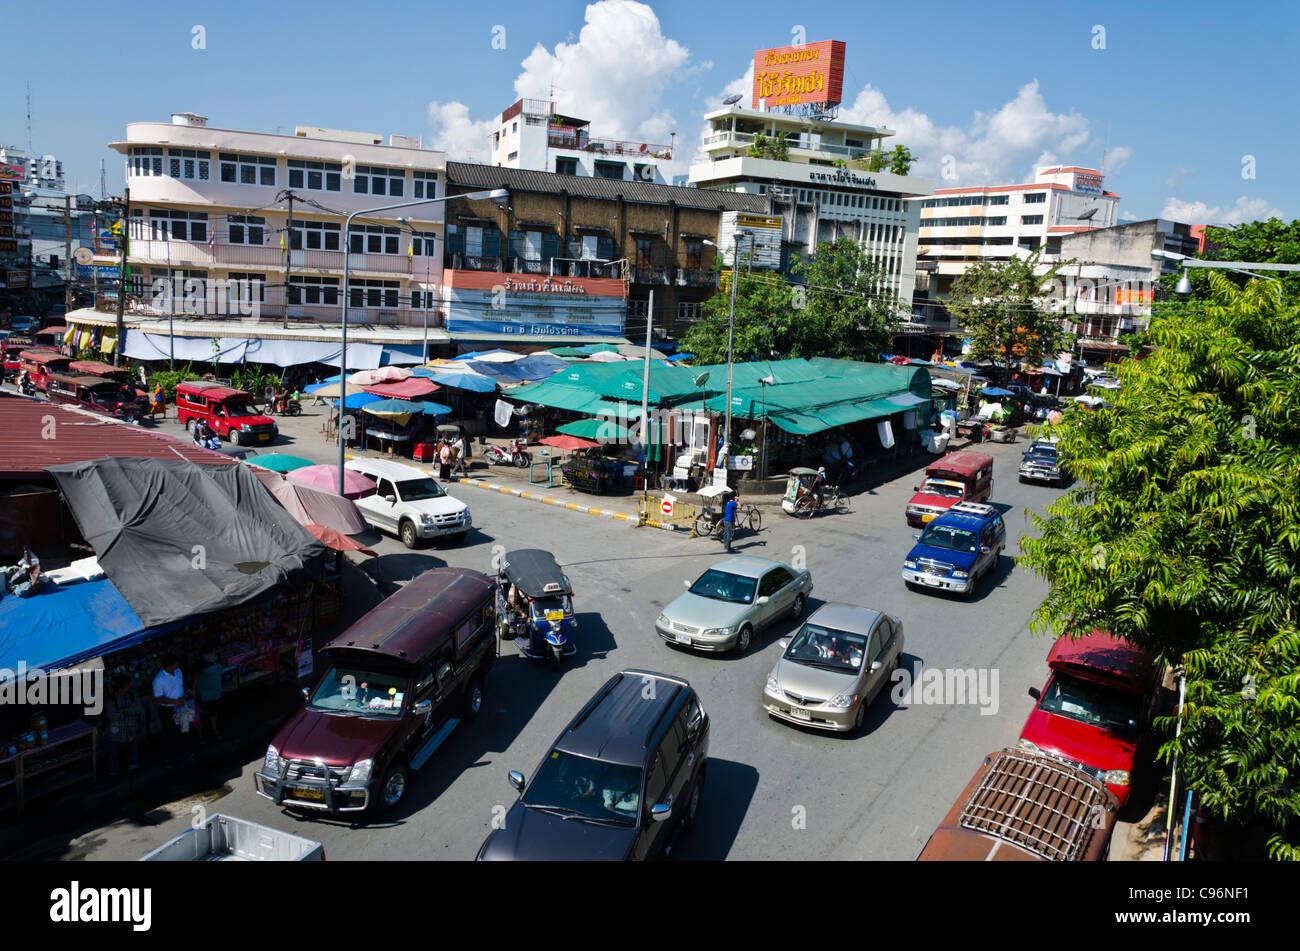 Overhead view of traffic and buildings in Chiang Mai Thailand near Ping River and Wararot market - Stock Image